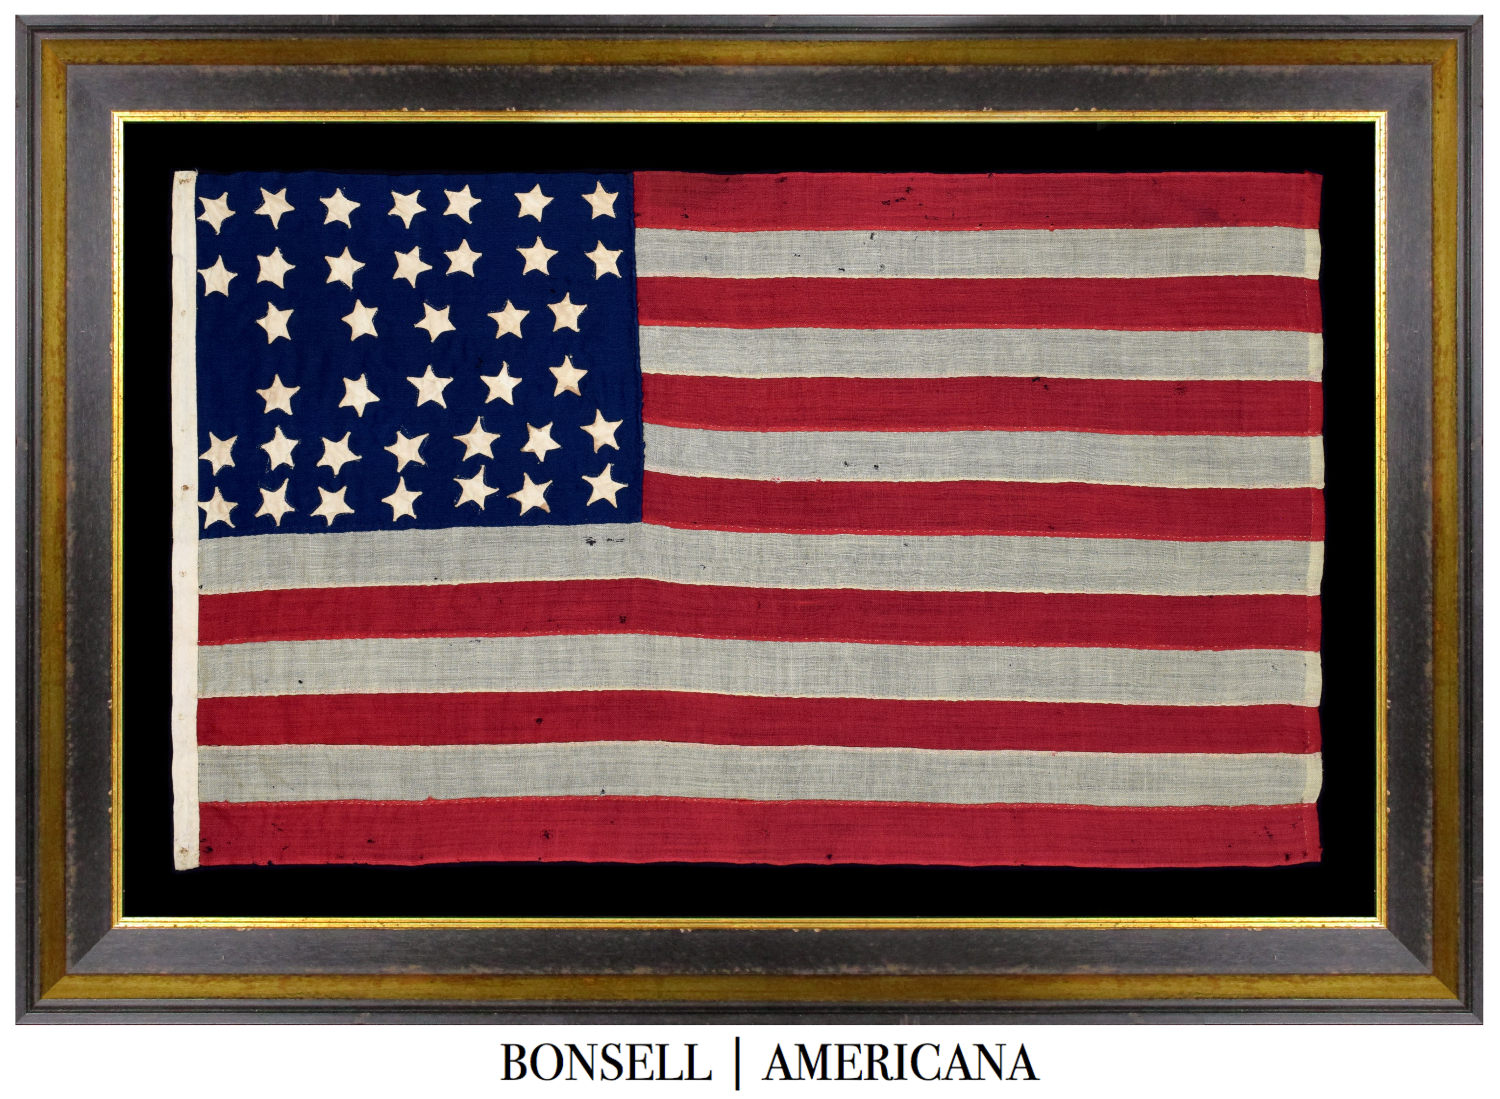 Antique Flag with an Hourglass Star Pattern